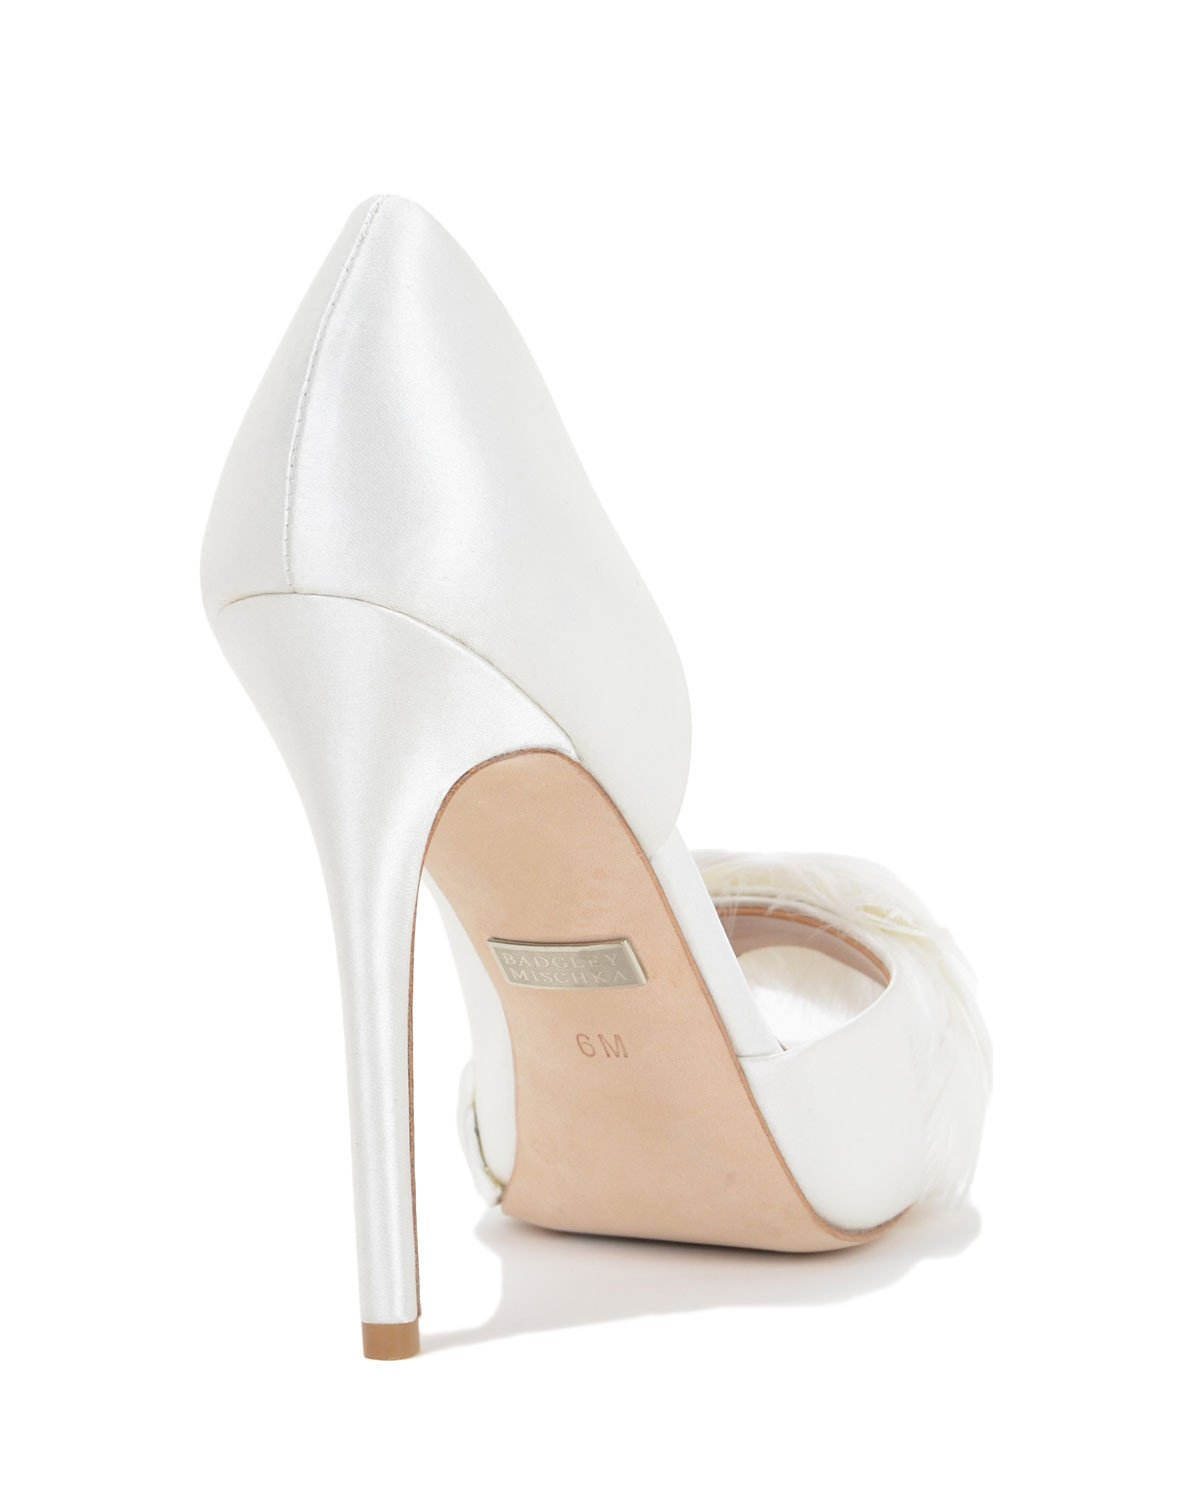 Badgley Mischka Designer Bridal Shoes - Piper - White